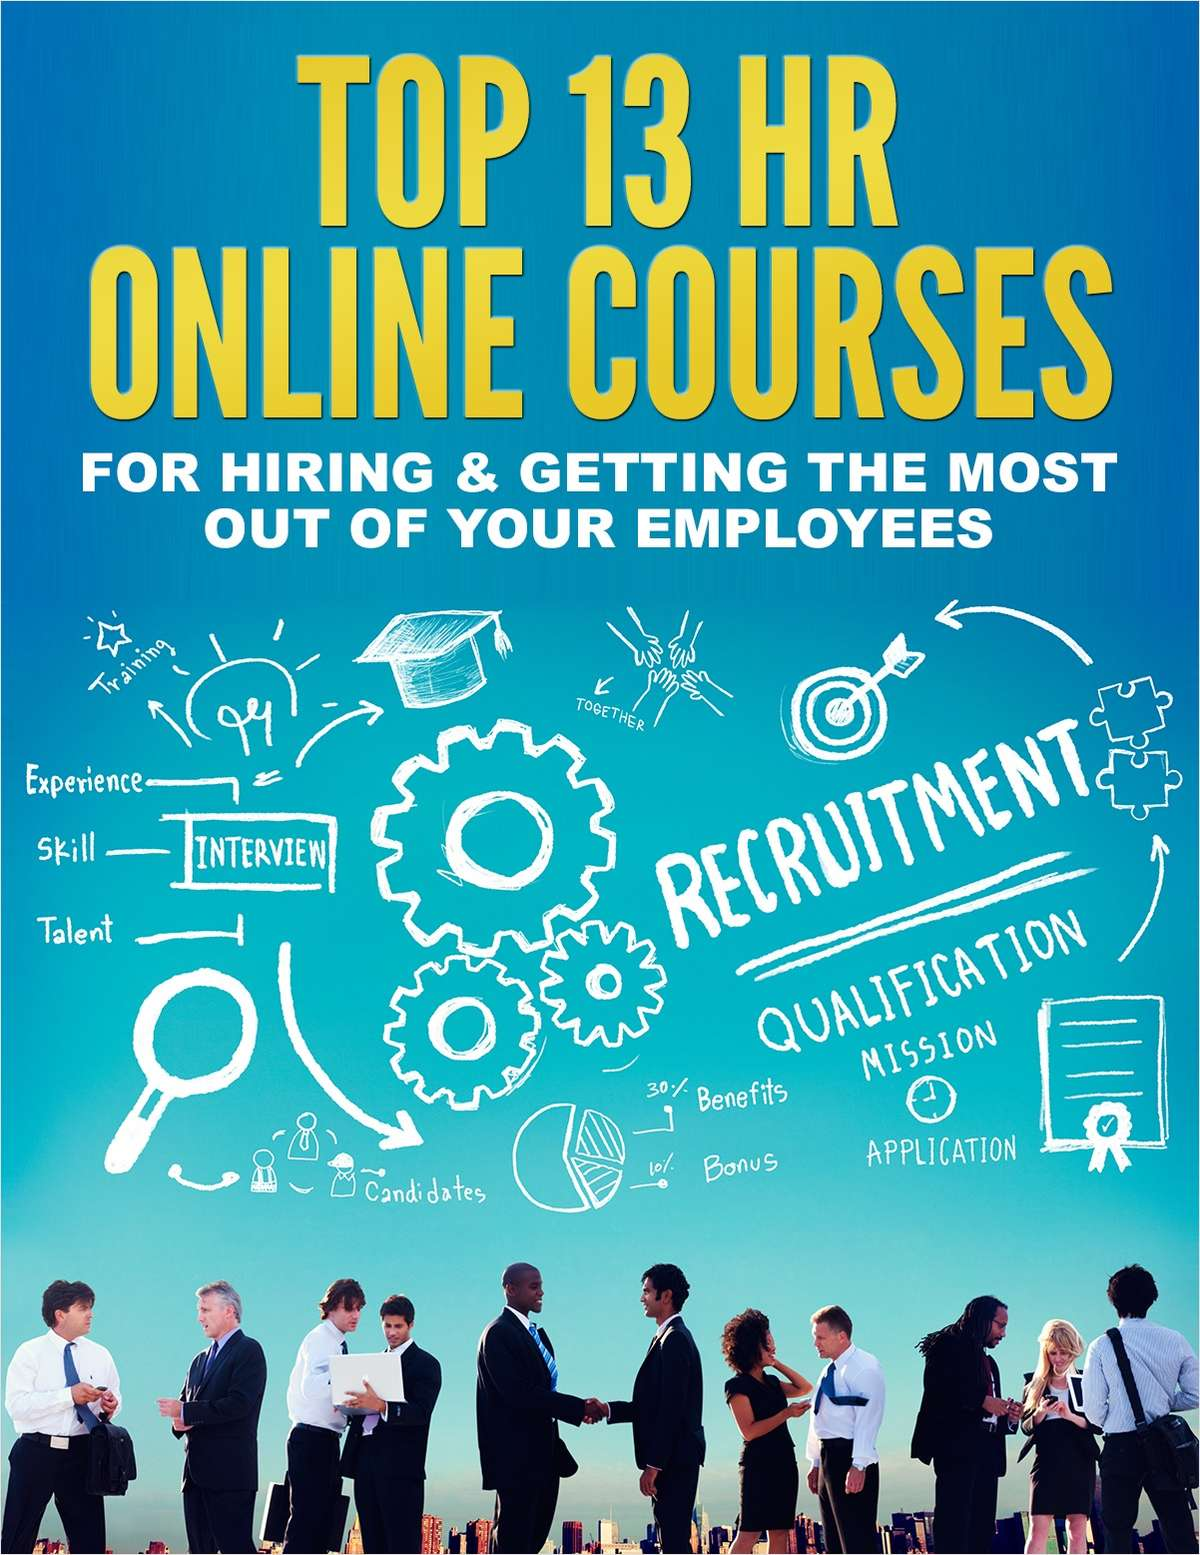 Top 13 HR Online Courses for Hiring & Getting the Most Out of Your Employees